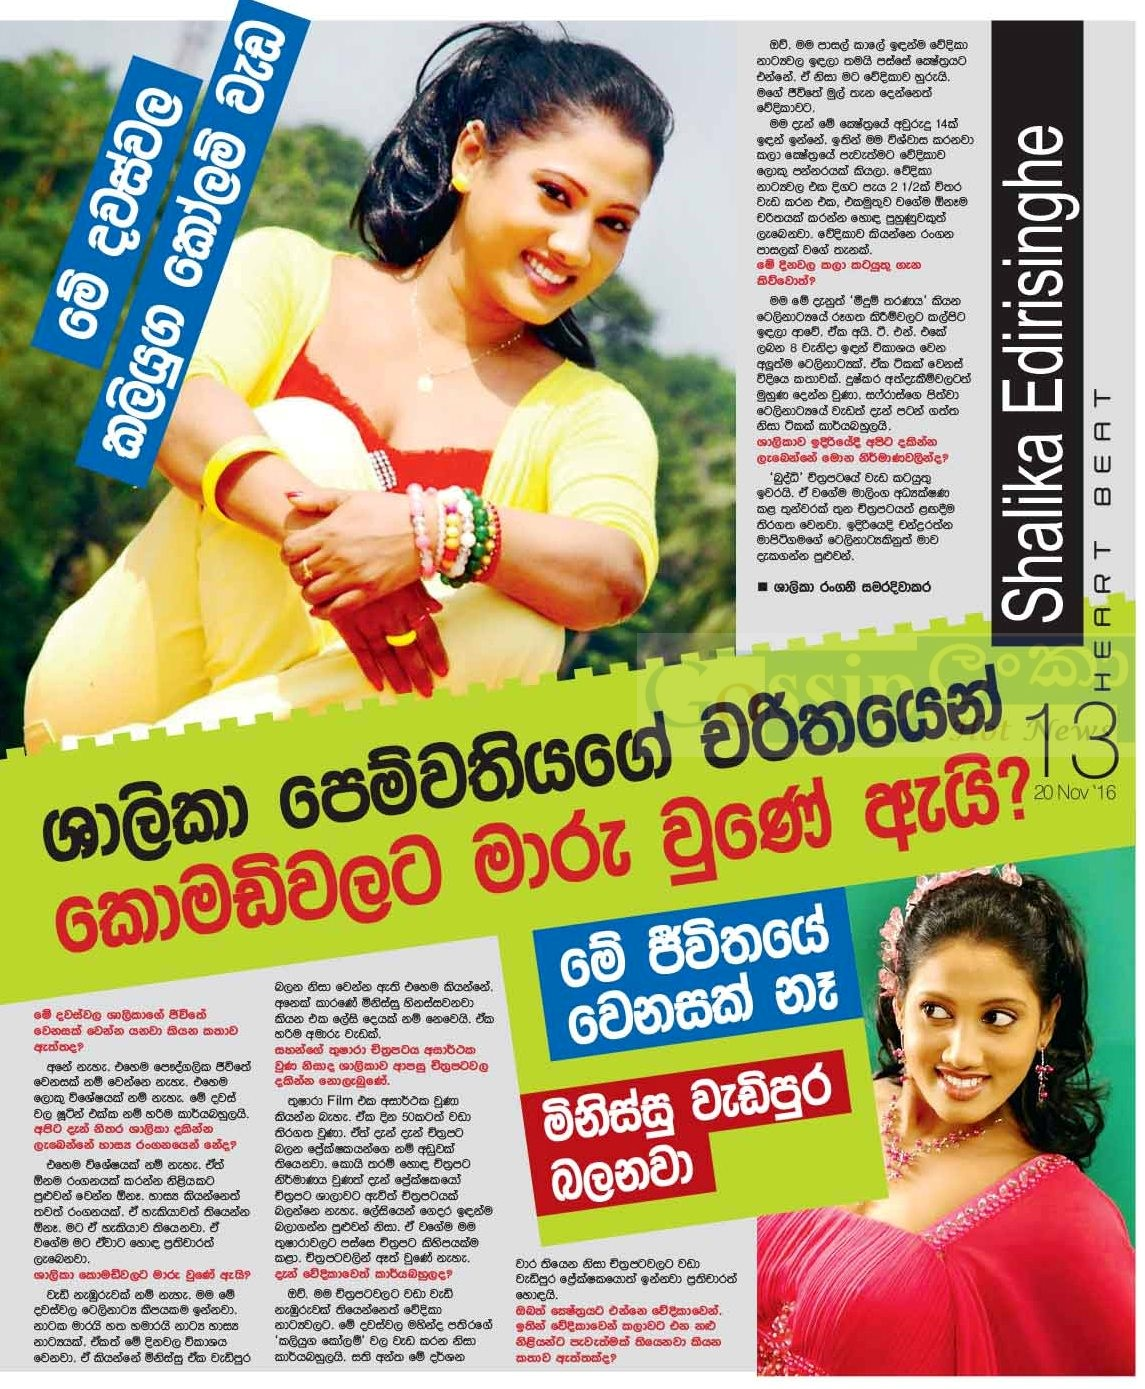 Gossip chat with Shalika Edirisinghe. Gossip chat with Shalika Edirisinghe.